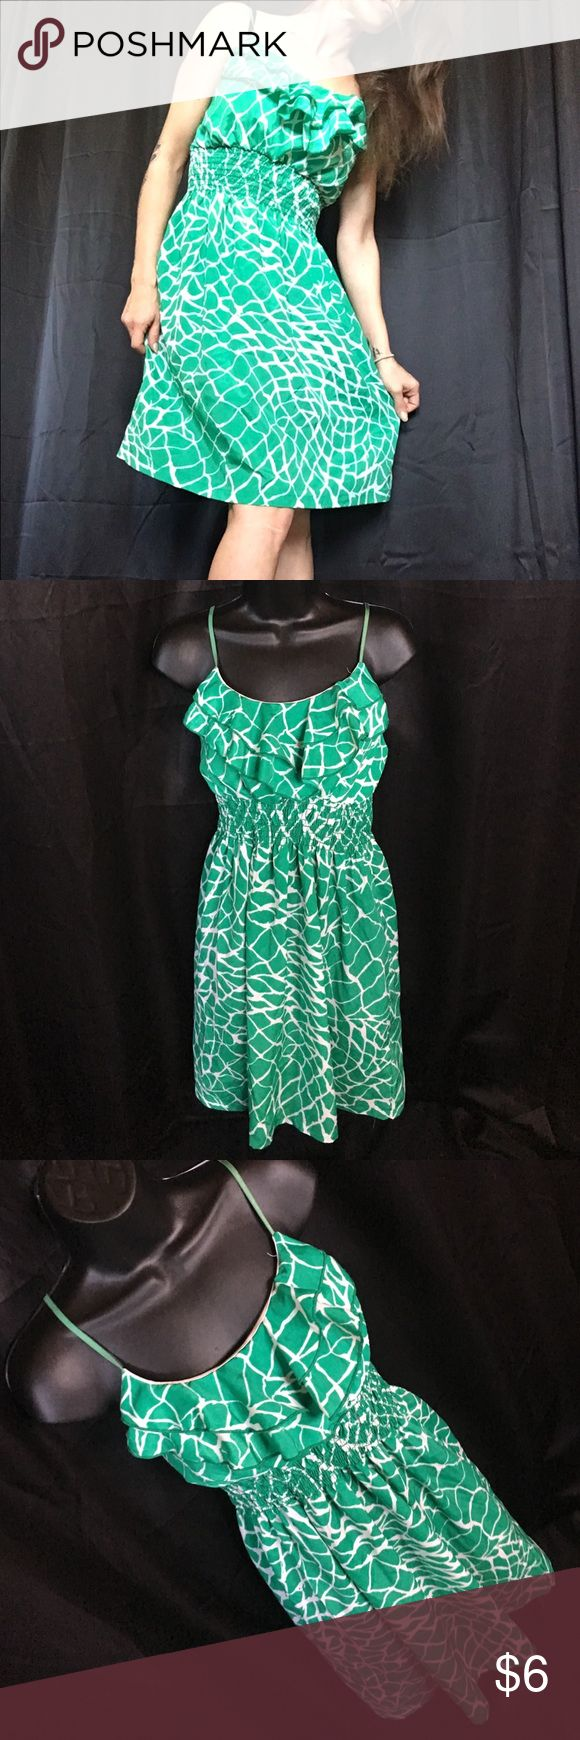 "Body Central Dress Green & white in color,ruffle design on base of breast, full length front 30 1/2"",full length back dress starts about should blade 26 1/4"", from top of shoulder strap down to base of under pit 8"" drop,bust width 12"",waistline with 12"" with about 2 1/2"" stretch. Body Central Dresses"